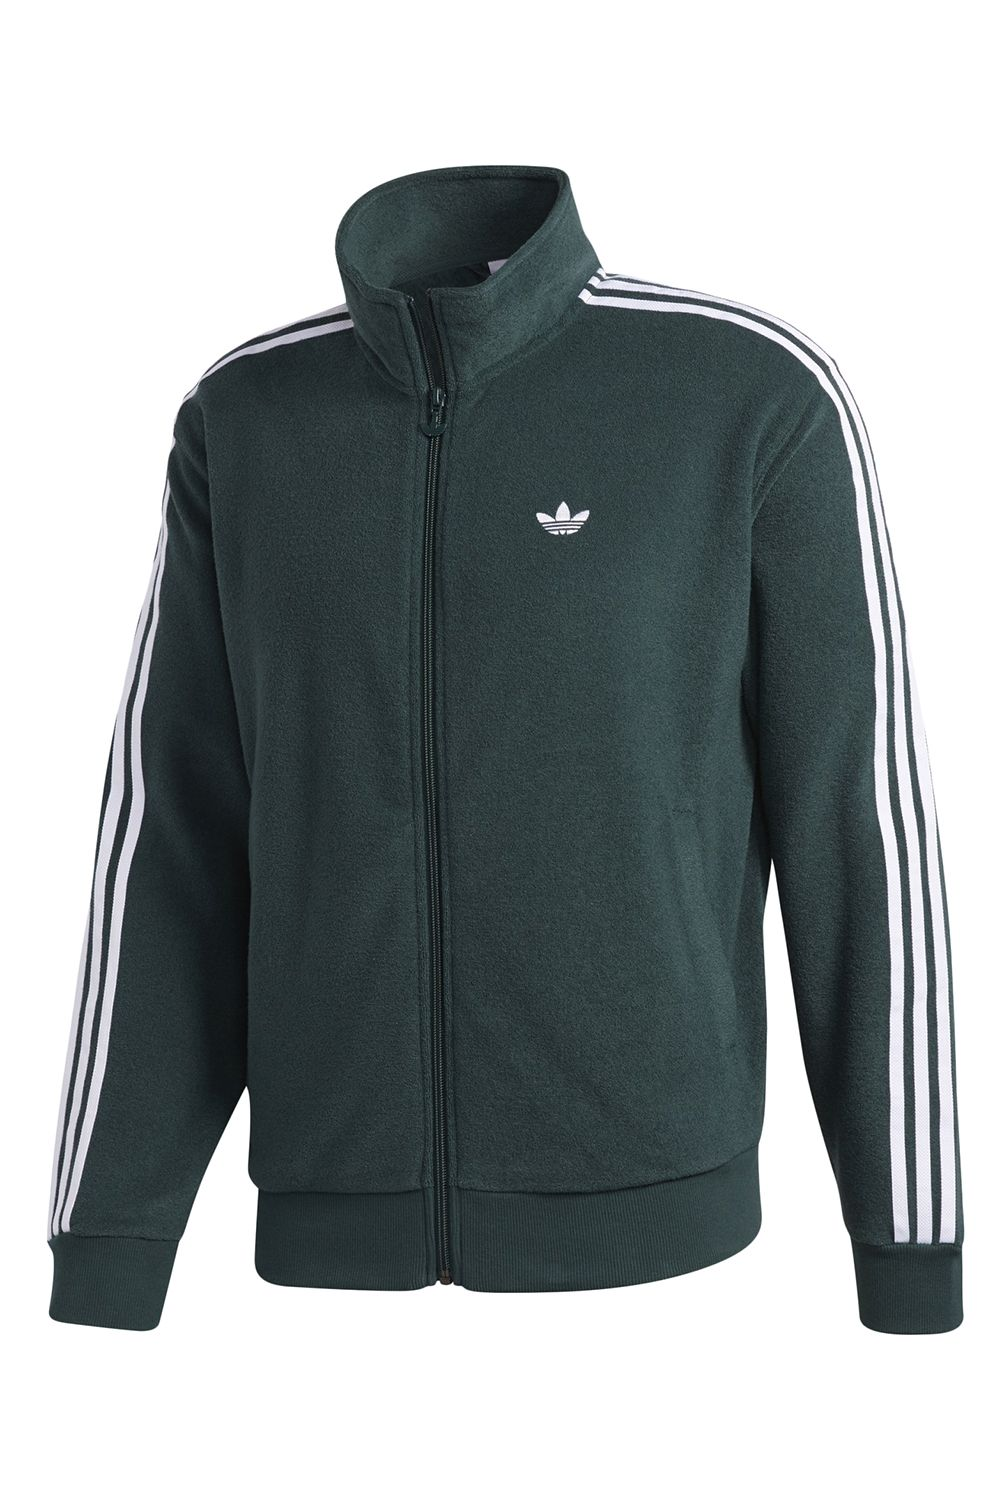 Casaco Adidas BOUCLETTE Mineral Green/White